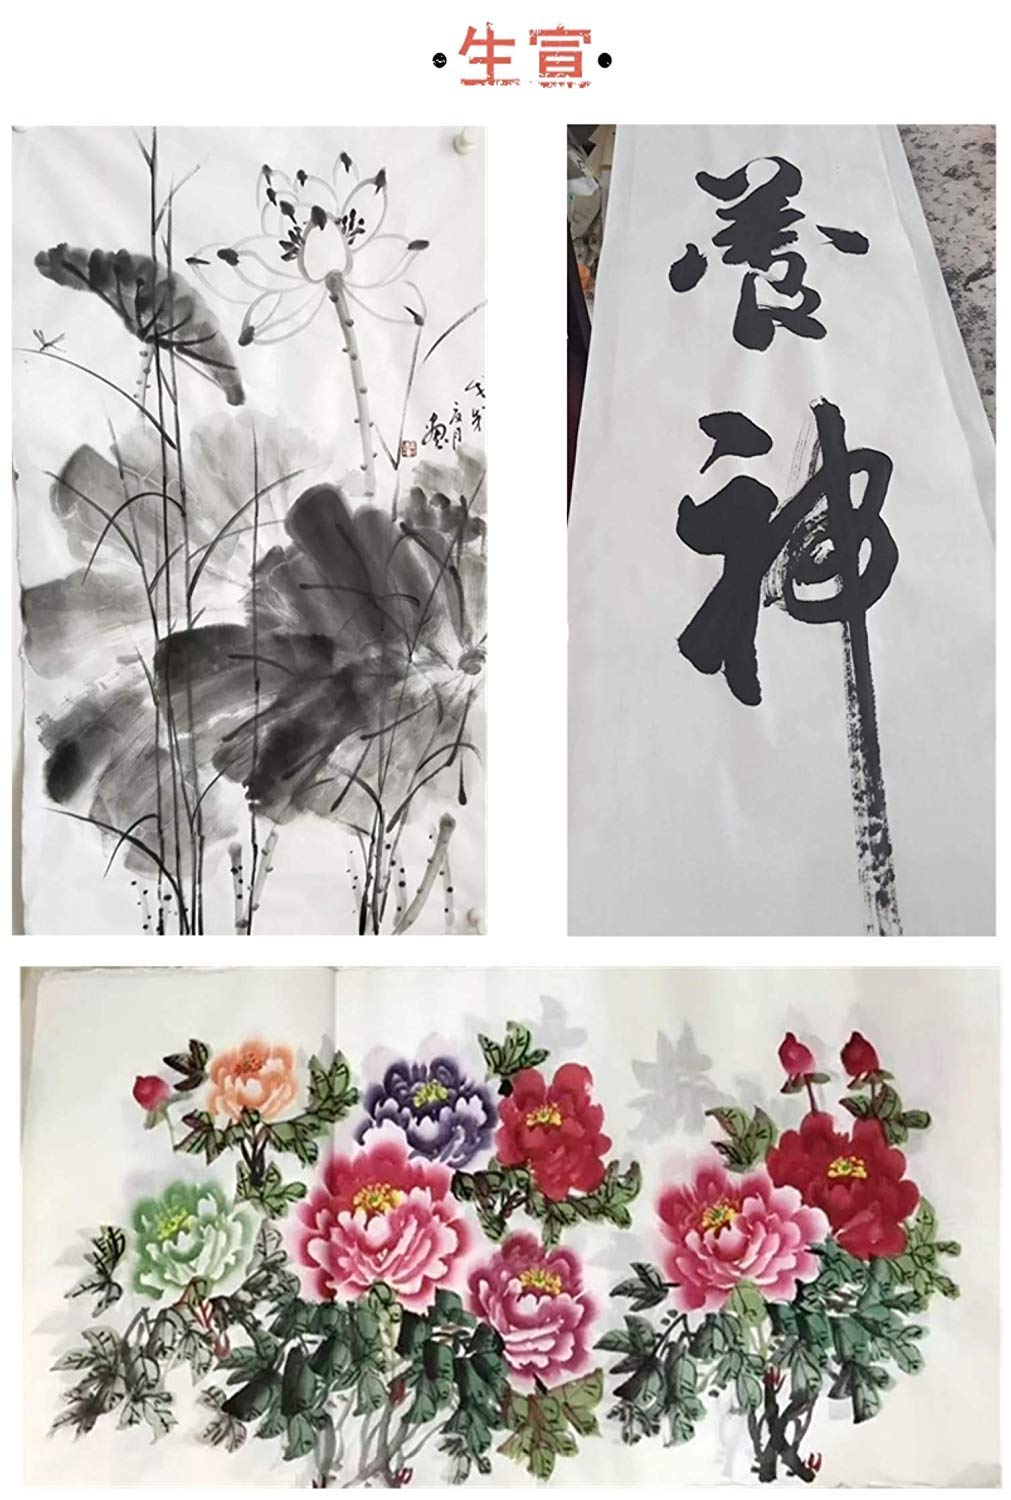 19.68 x 39.37 inch 50 x 100 cm Half Raw Ripe Xuan MEGREZ Chinese Watercolor Practice Chinese Japanese Calligraphy Writing Sumi Drawing Xuan Rice Paper without Grids 100 Sheets // Set Half Sheng Shu